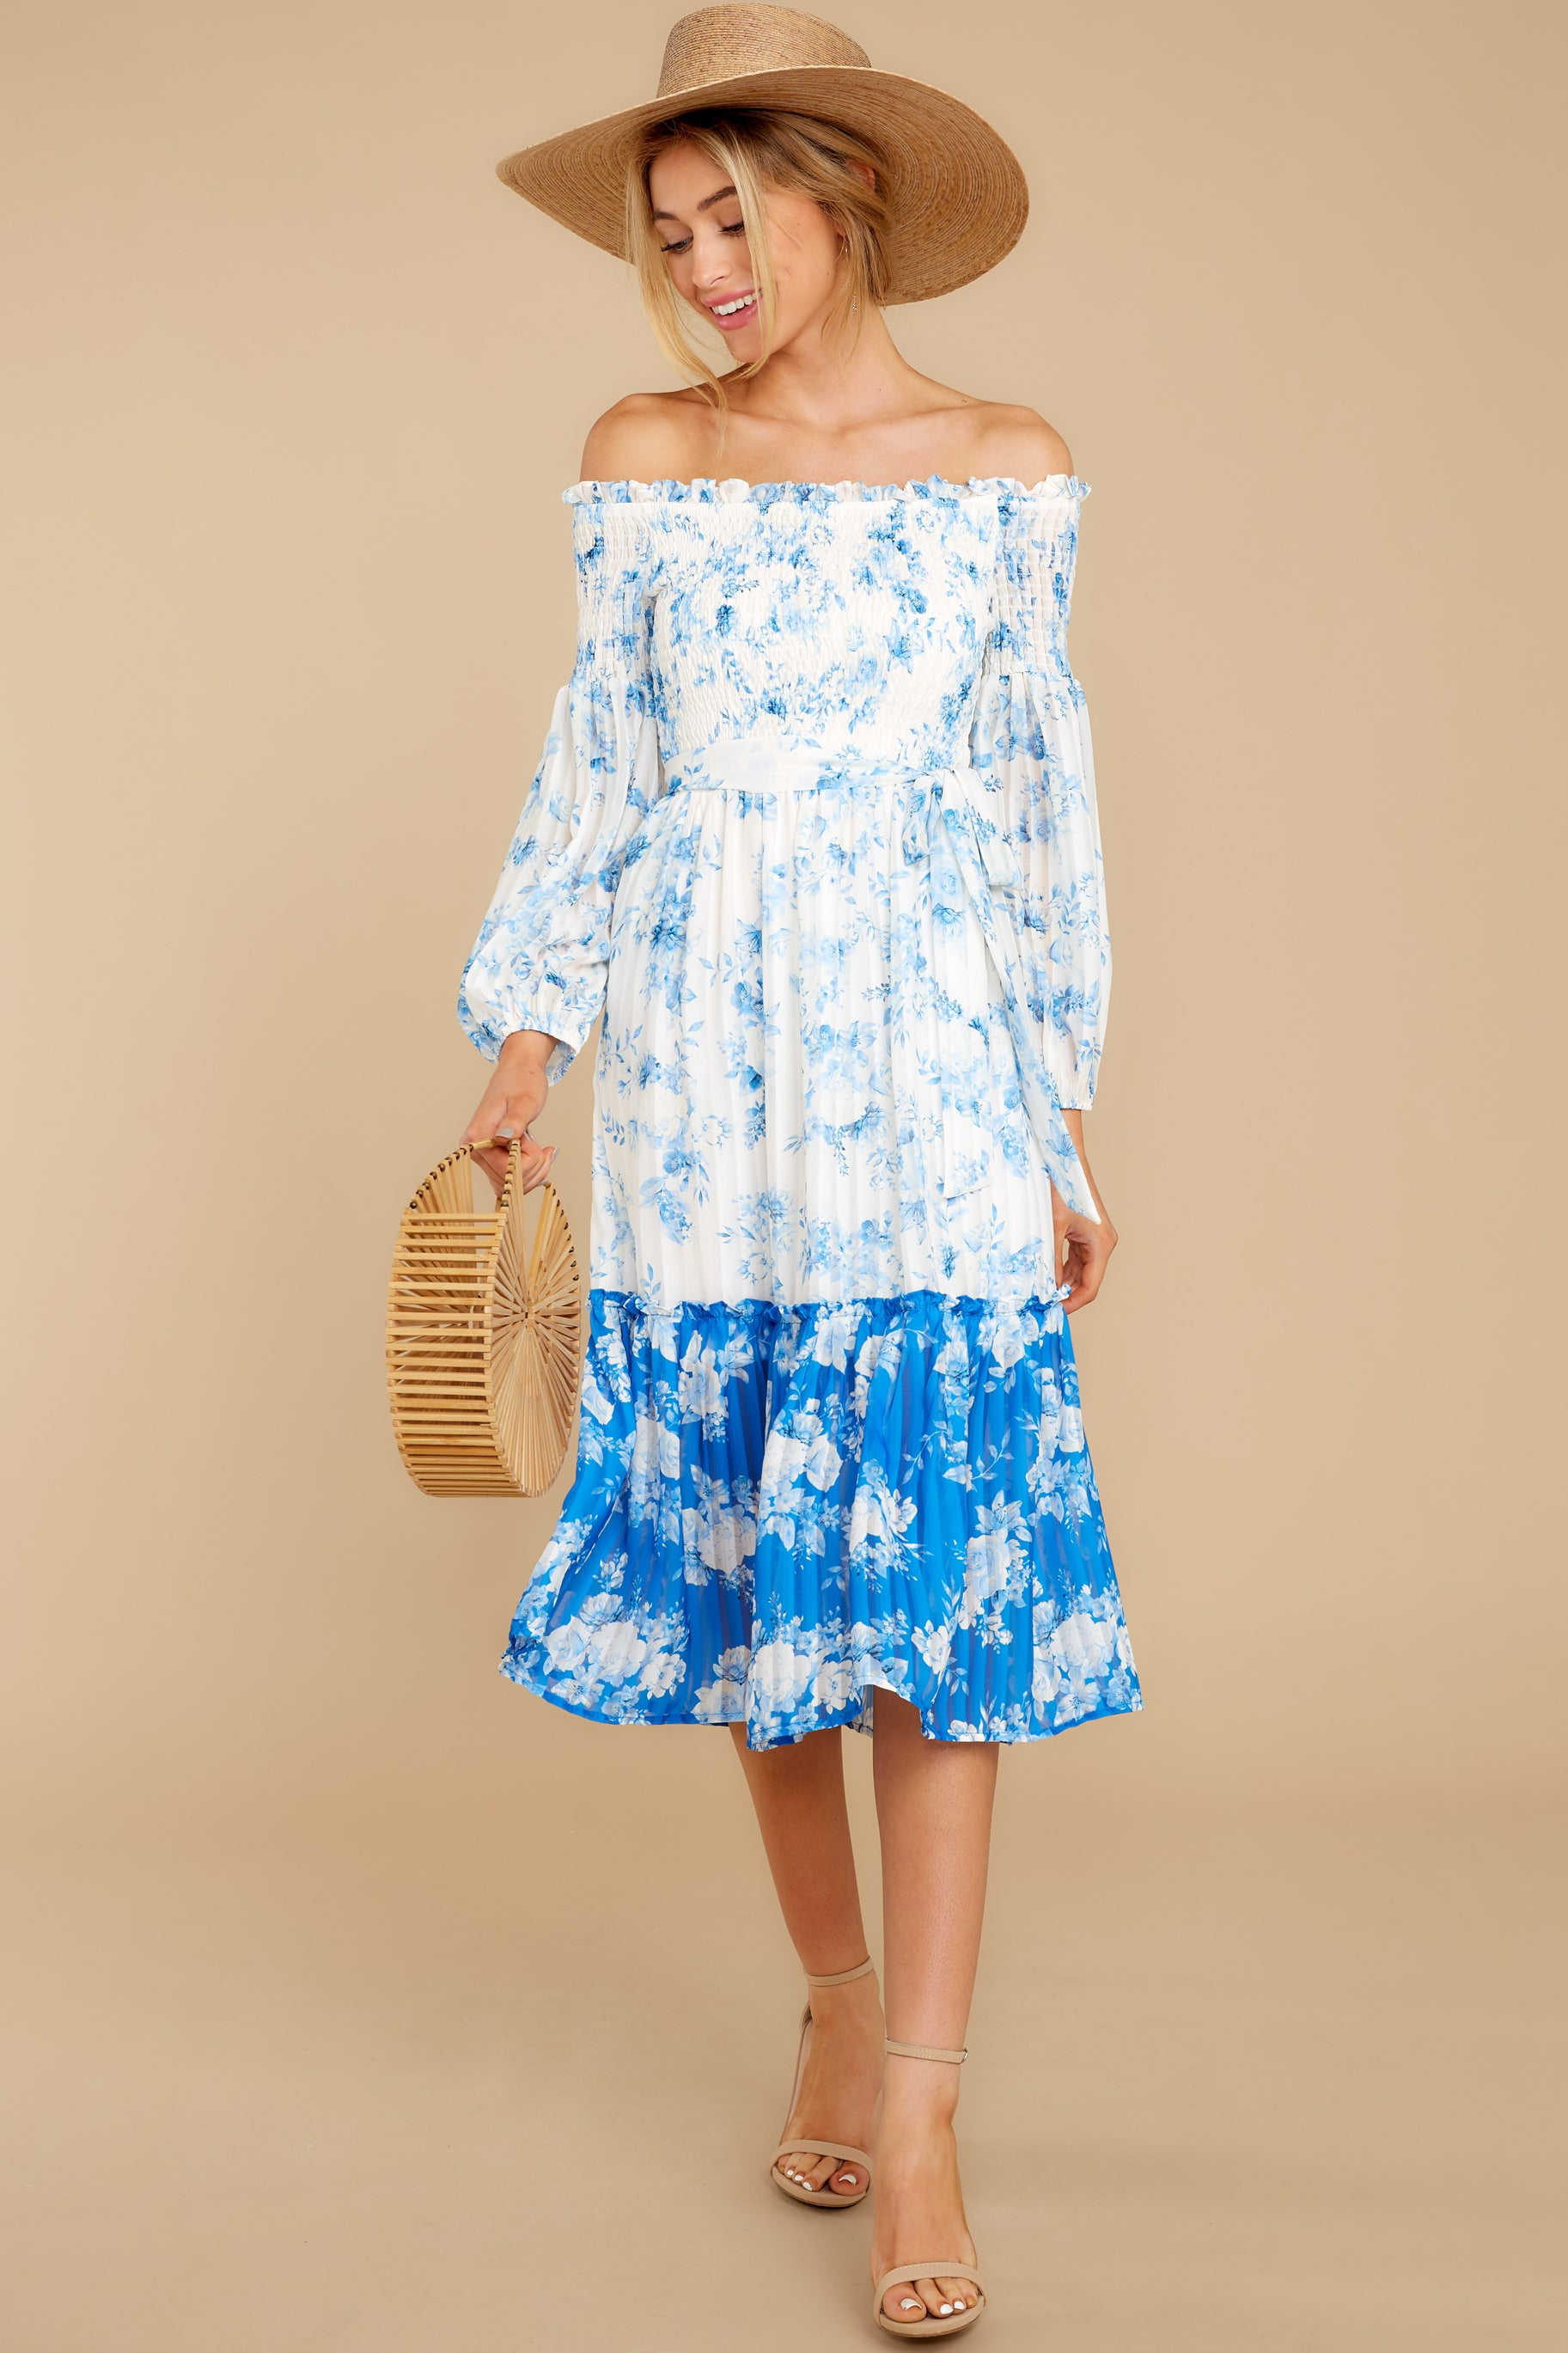 5 Looking Forward To Spring Blue Multi Off The Shoulder Midi Dress at reddress.com